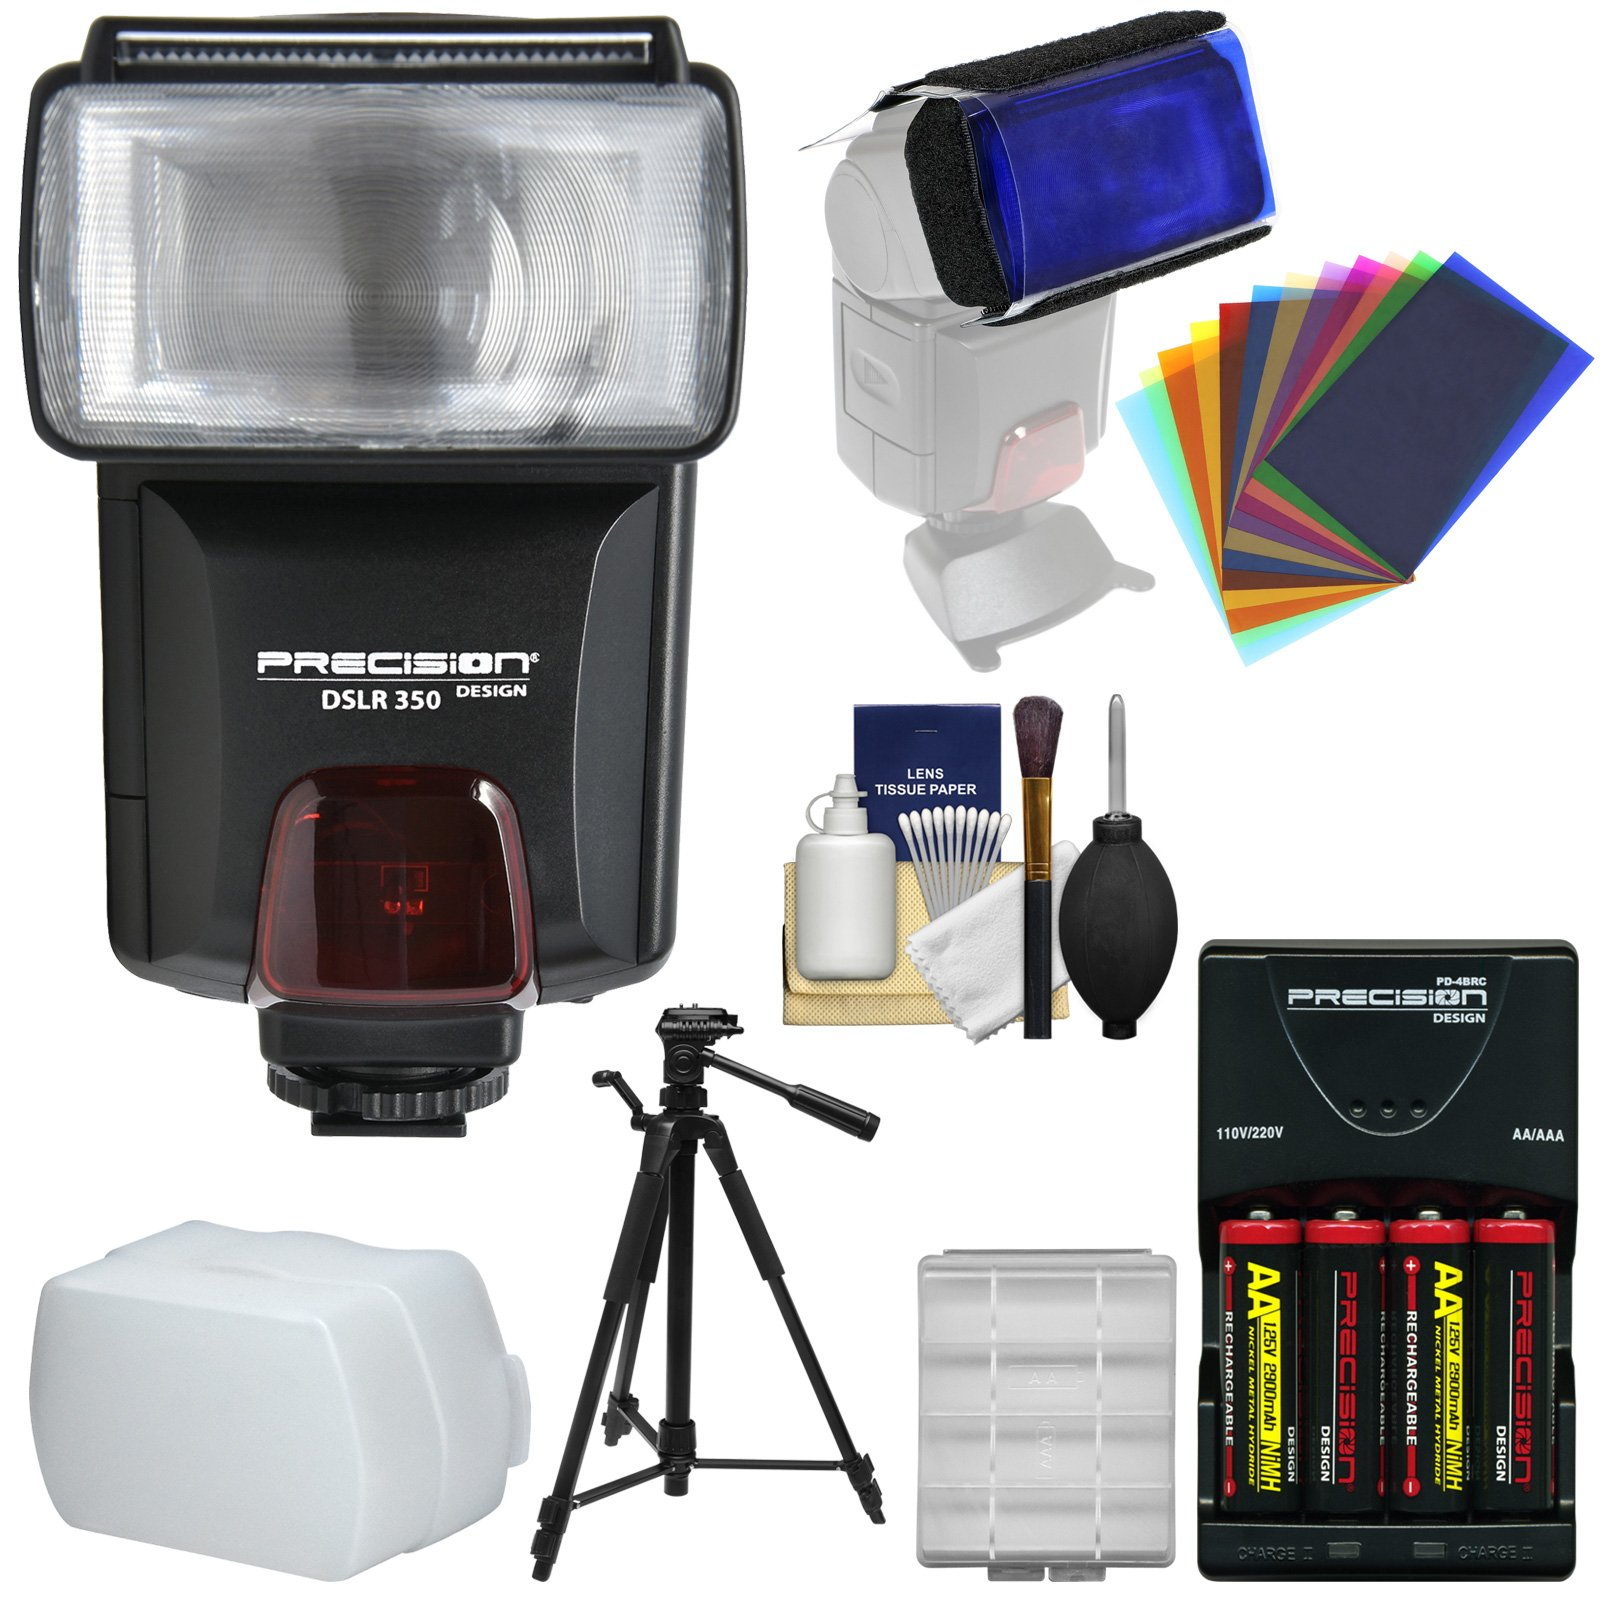 Precision Design DSLR350 High Power Auto Flash with Batteries & Charger + Bounce Diffuser + Color Gel Filters + Tripod + Kit